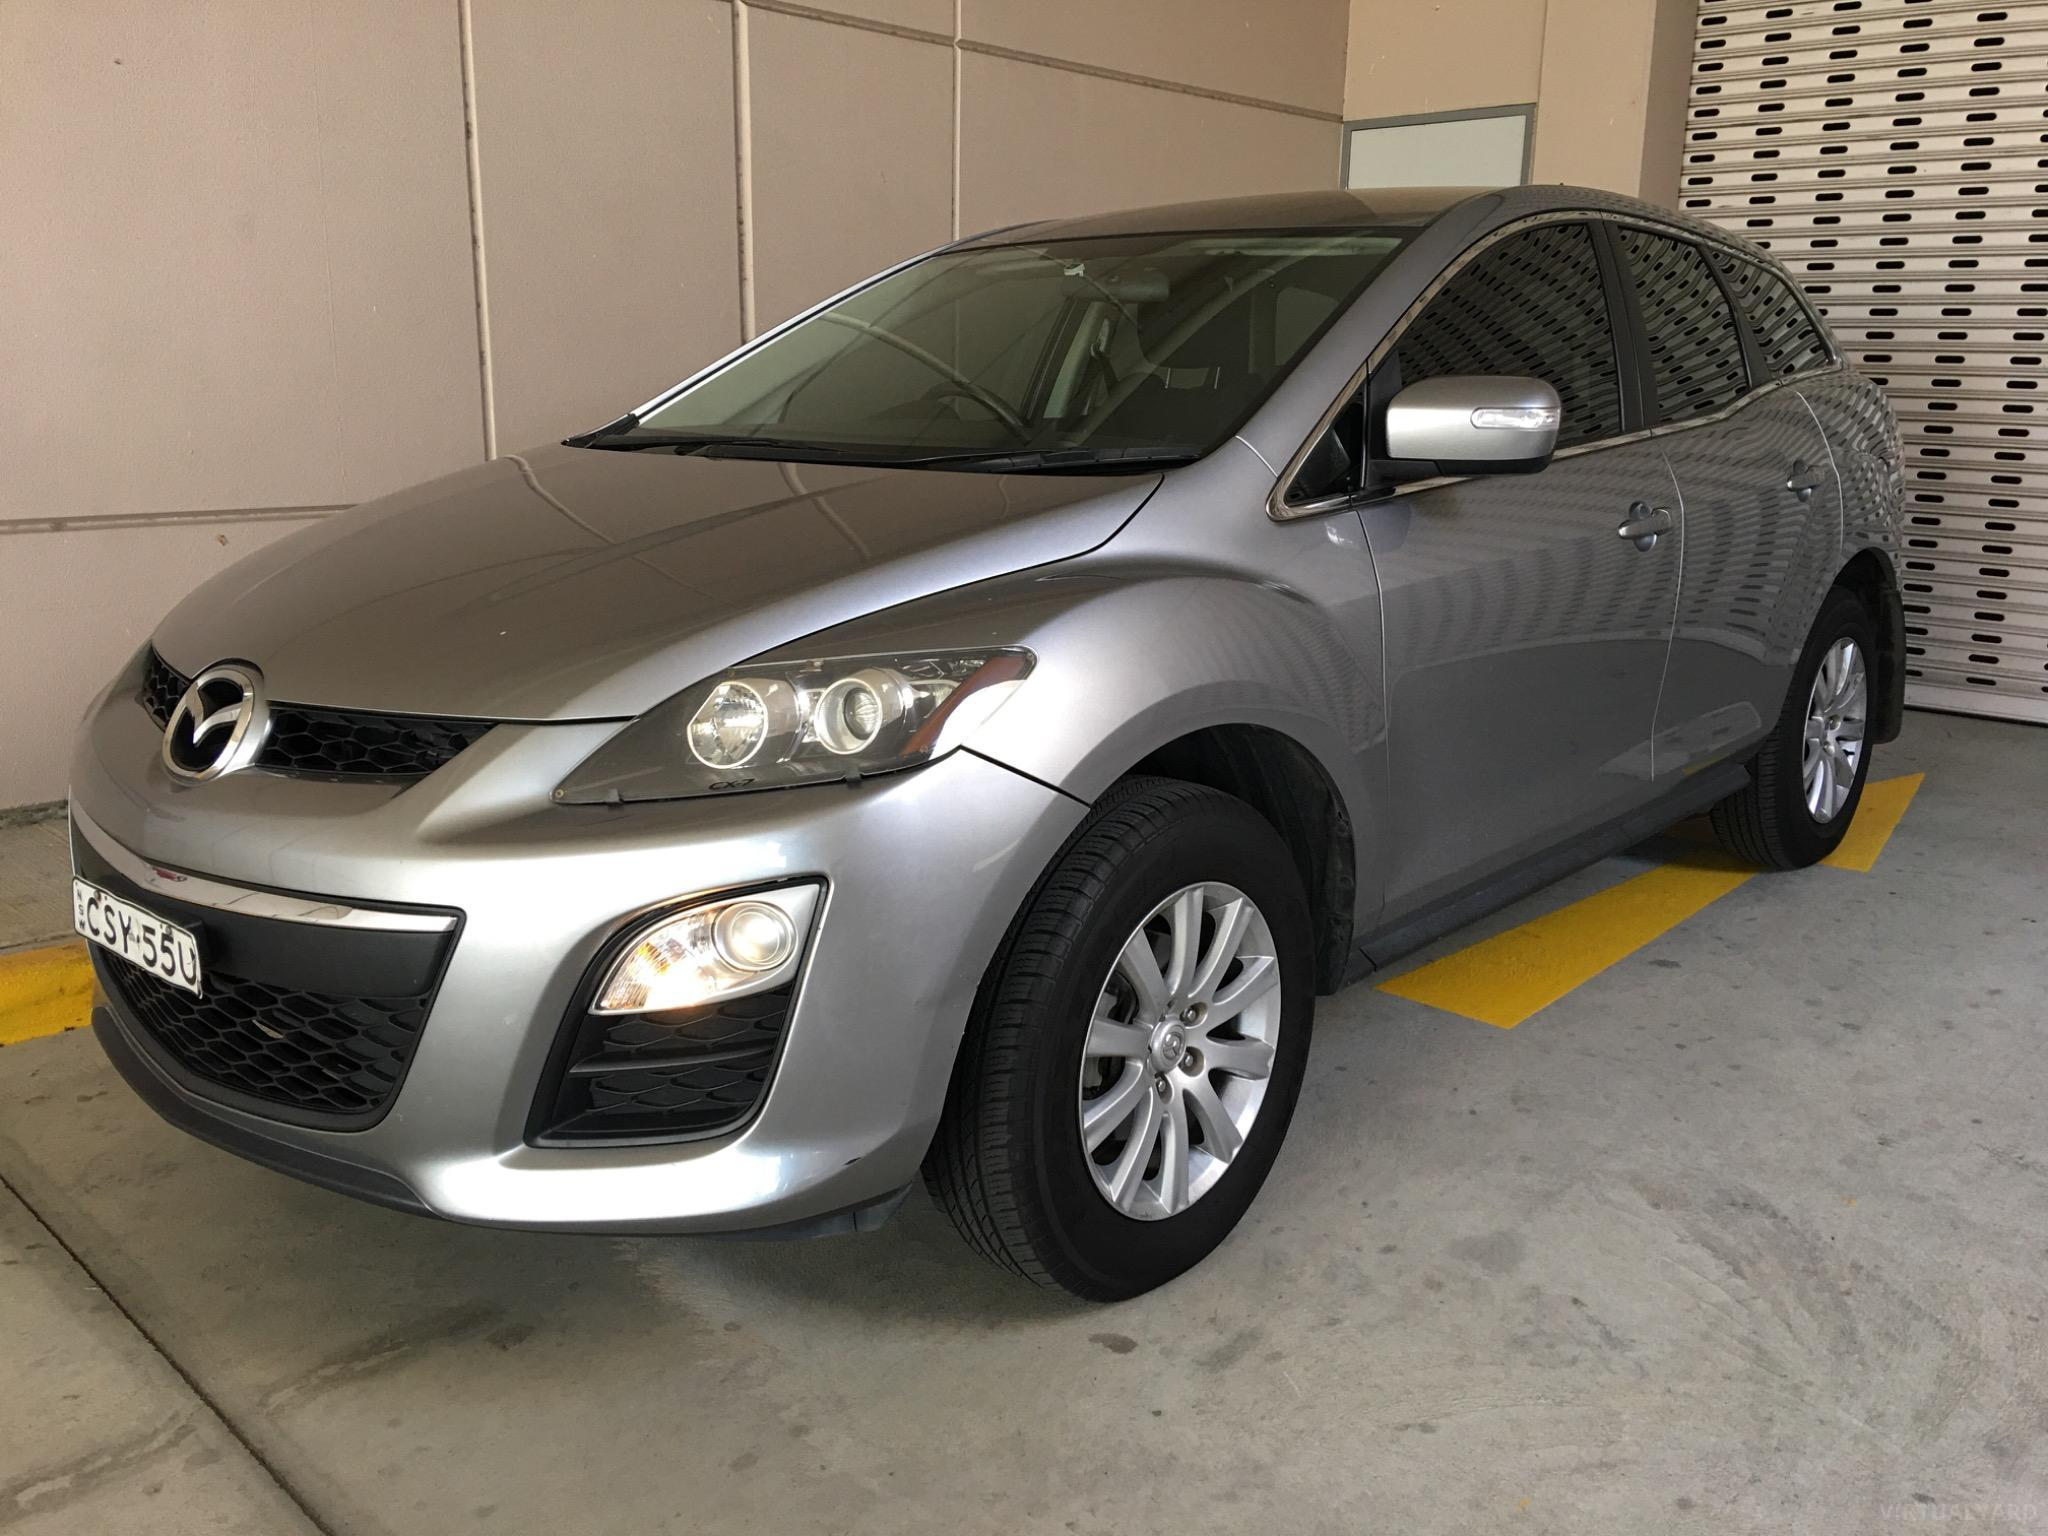 2011 Mazda Cx-7 ER Series 2 Classic Sports Wagon 5dr Activematic 6sp 4WD 2.3T Picture 8